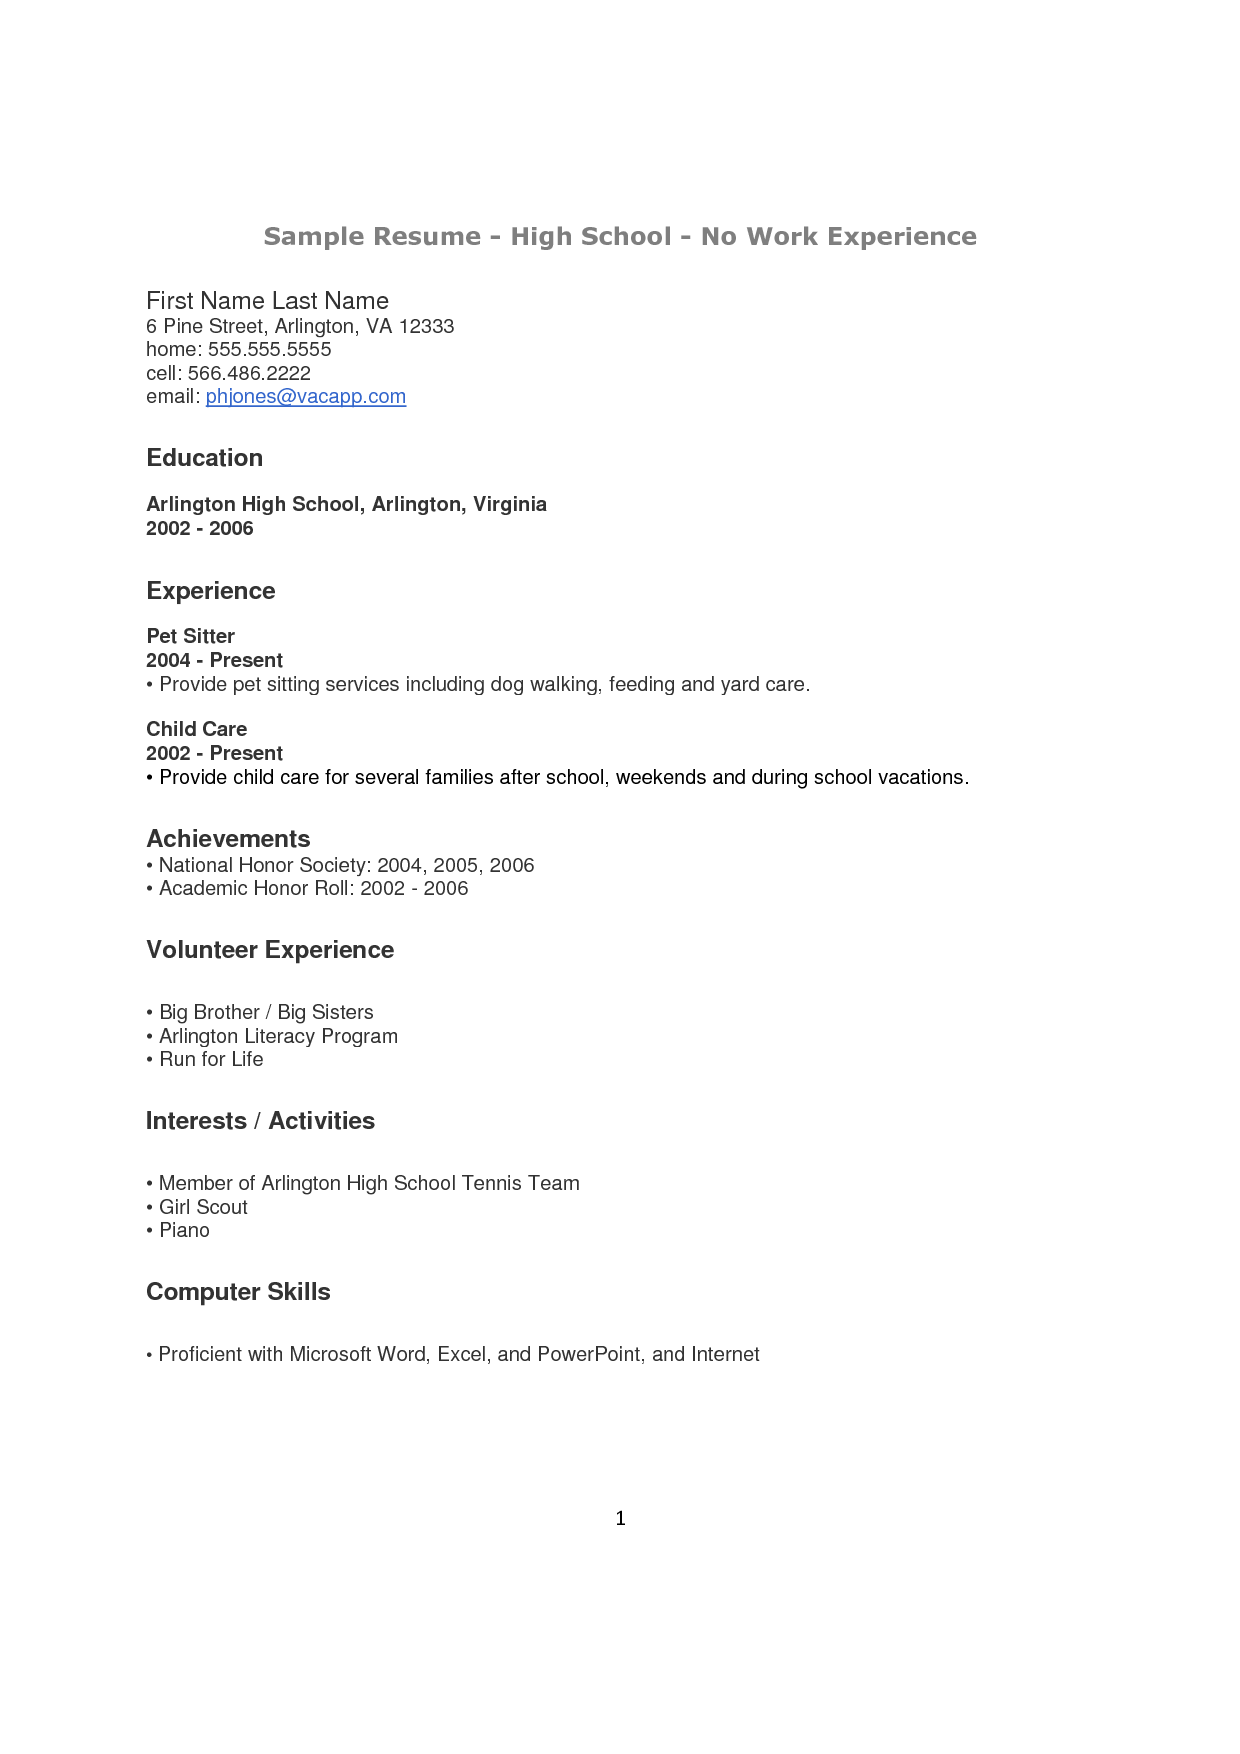 High School Resume Sample Resume For High School Student With No Work Experience  Resume